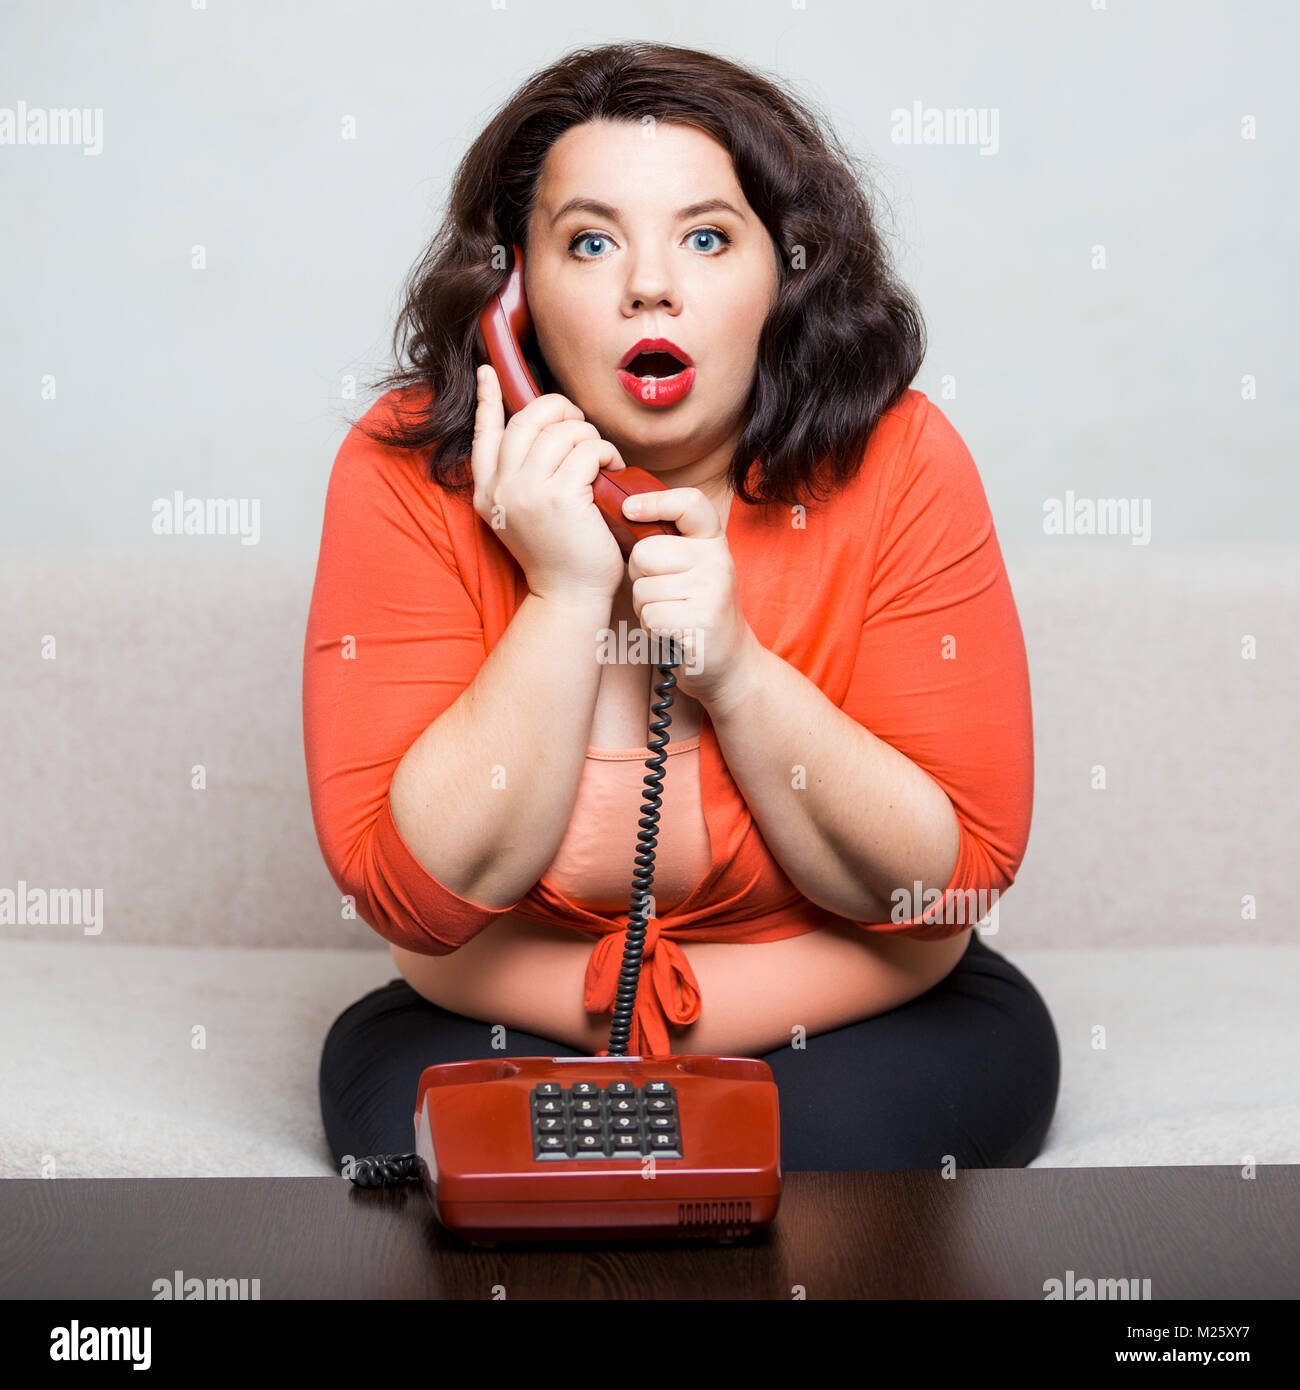 Portrait of a surprised fat adult woman with a phone - Stock Image